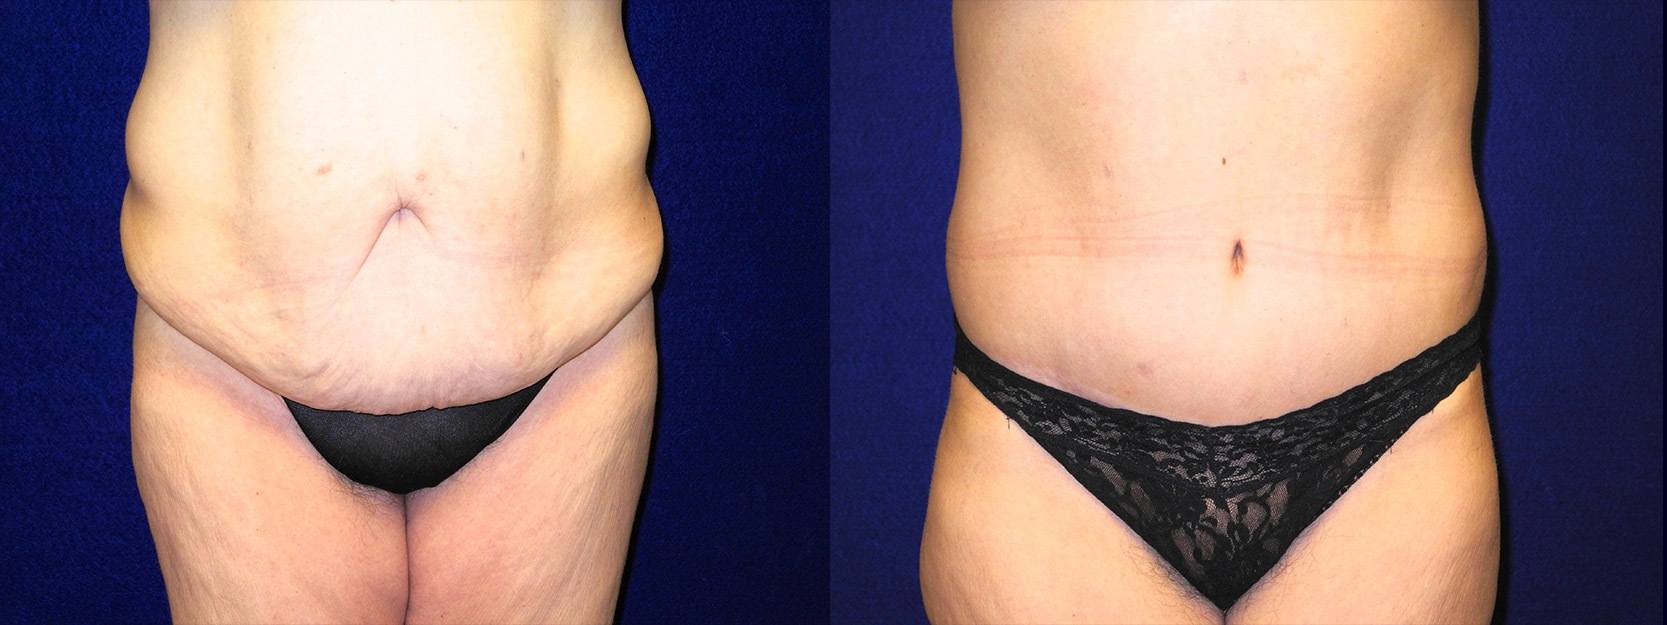 Frontal View - Tummy Tuck After Massive Weight Loss